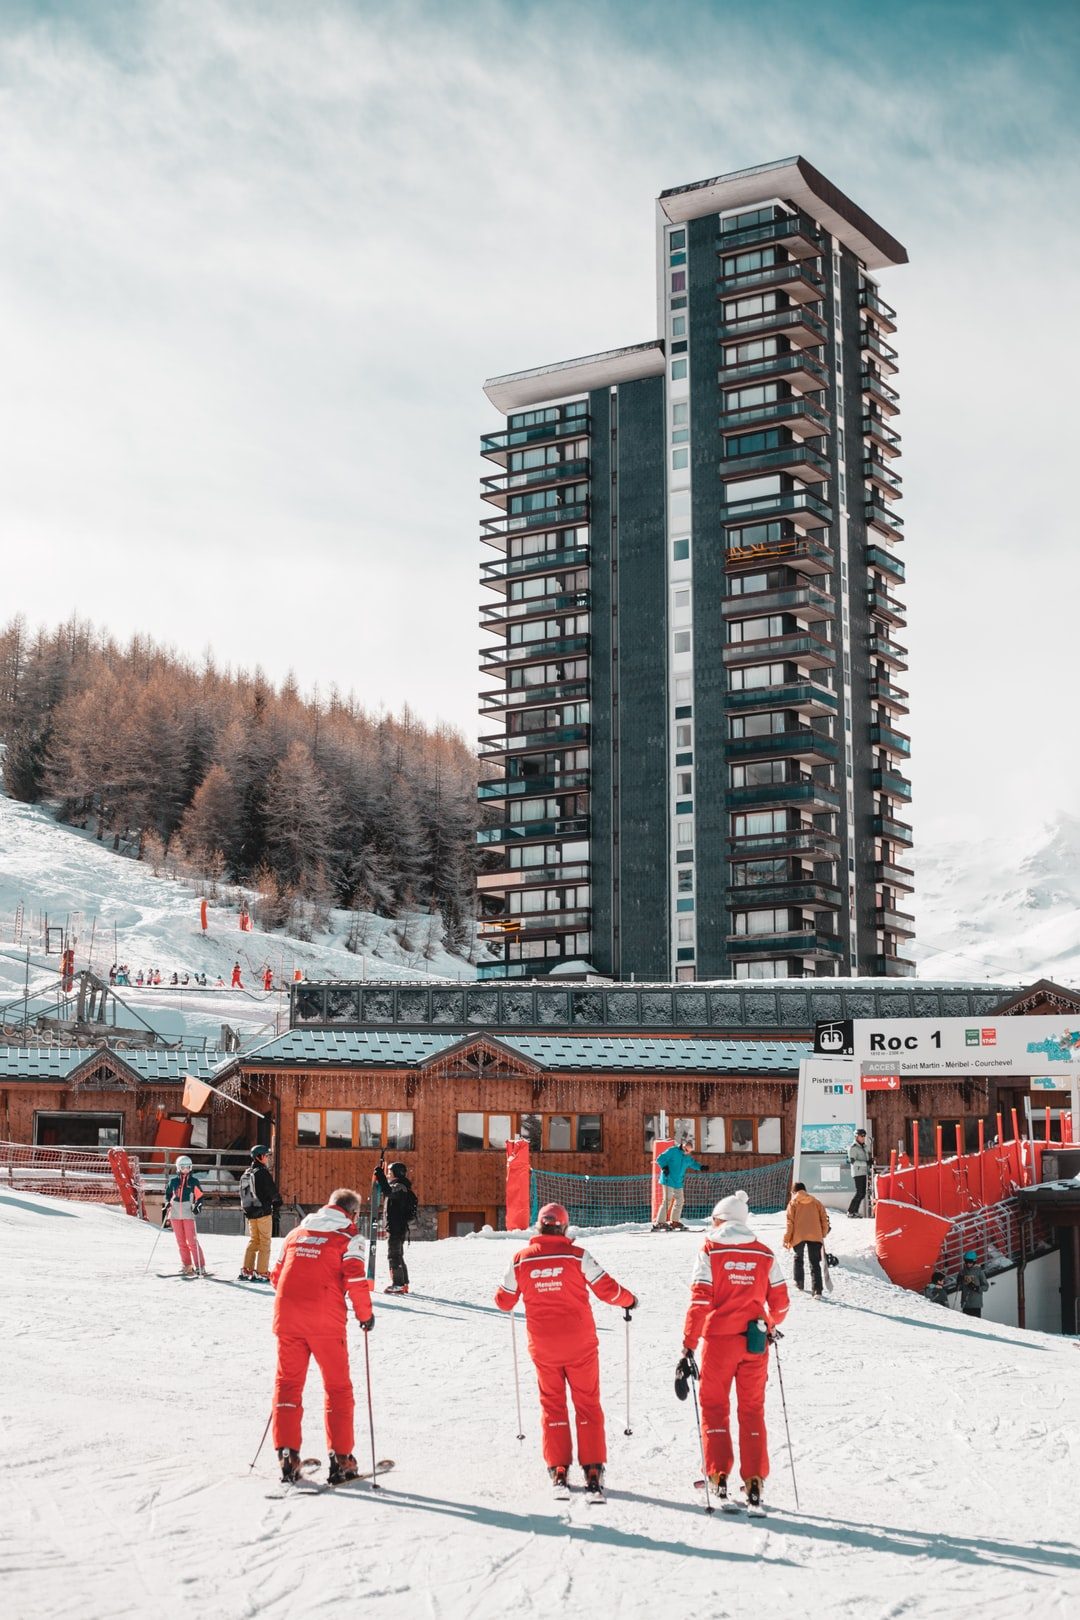 """Every morning at 9am, every groups of ski lessons are meeting at the """"front de neige"""" as we call it at the ski resort. 3 ski instructor are wearing there red dress, an easy way to know they come from the most popular French Ski School ESF (École de Ski Français)."""